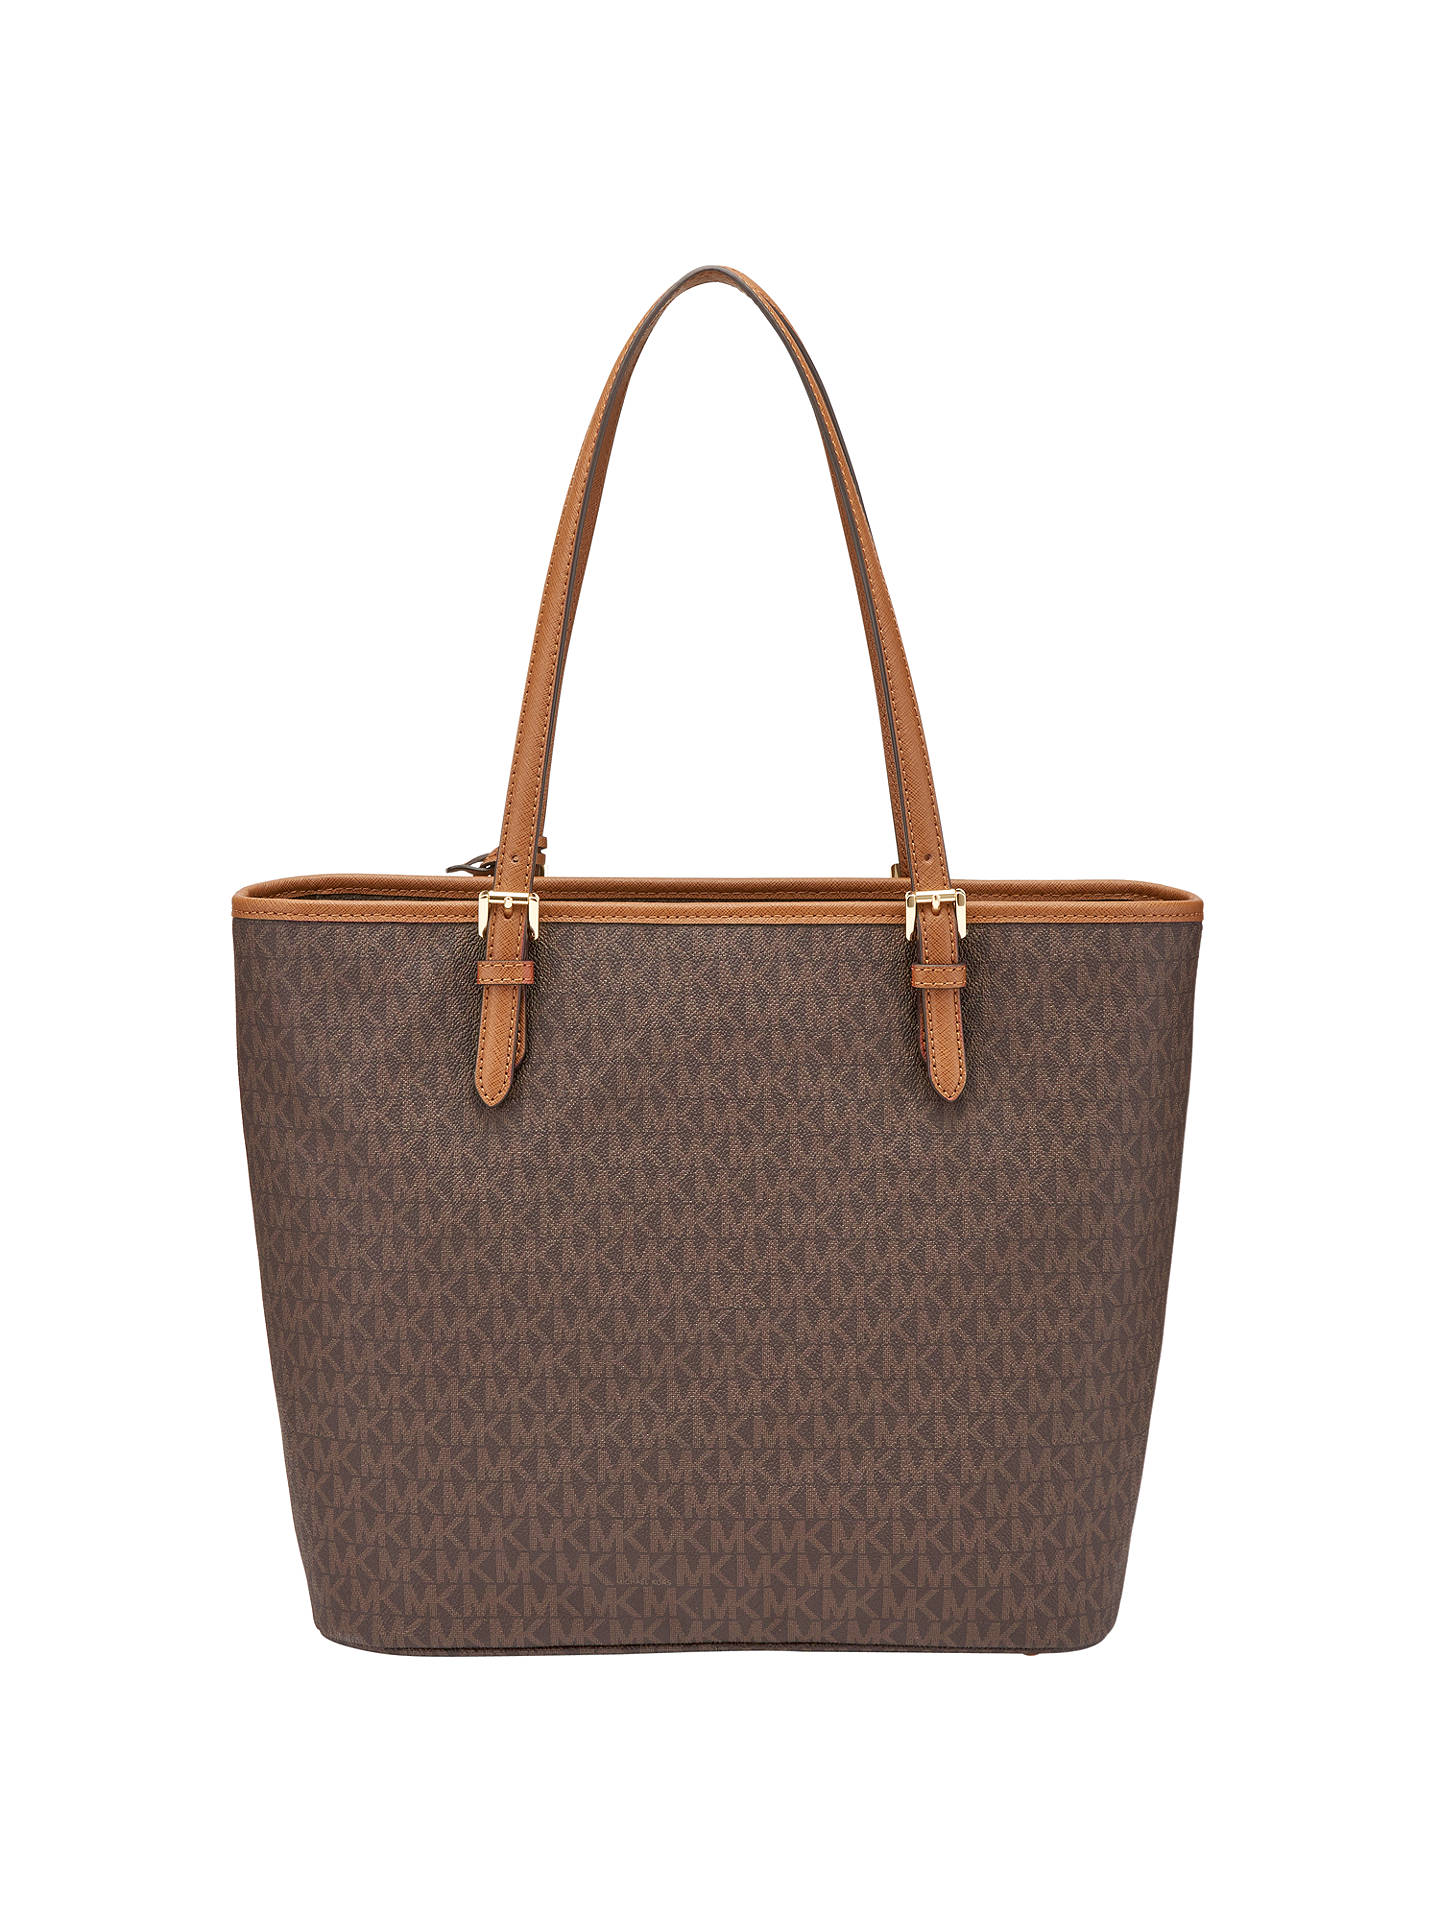 b88457ecf1de2 ... Buy MICHAEL Michael Kors Jet Set Item Leather Large Snap Pocket Tote Bag